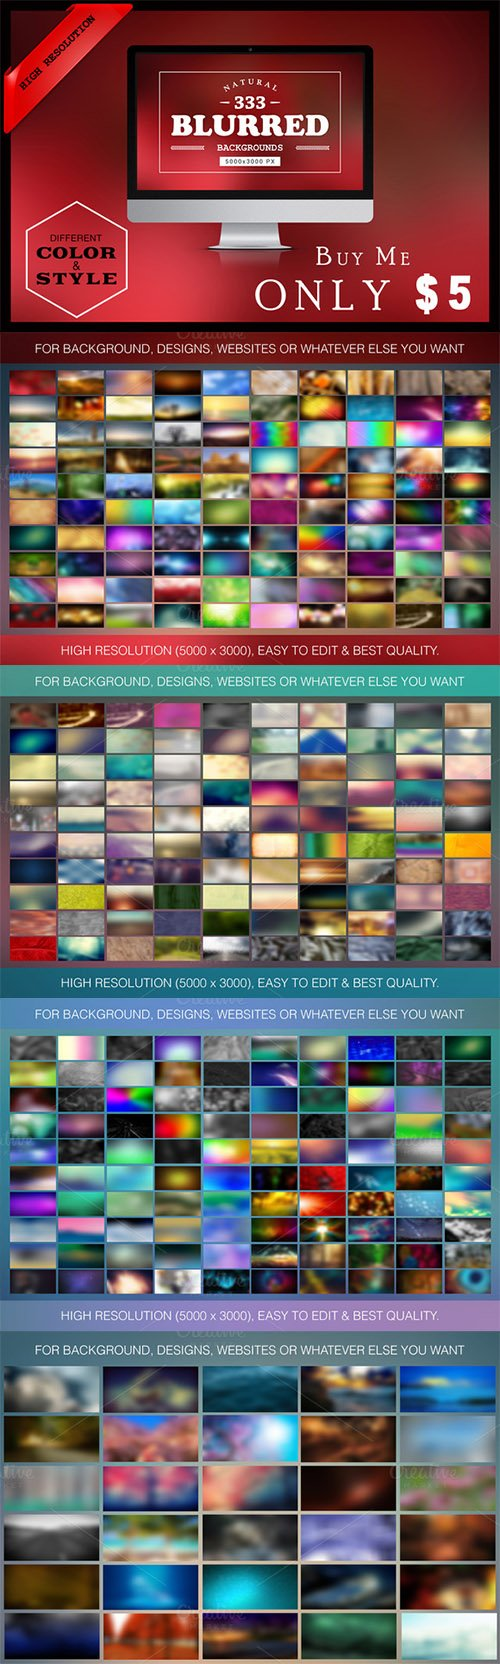 300+ Free(33)Blurred Backgrounds - Creativemarket 303886